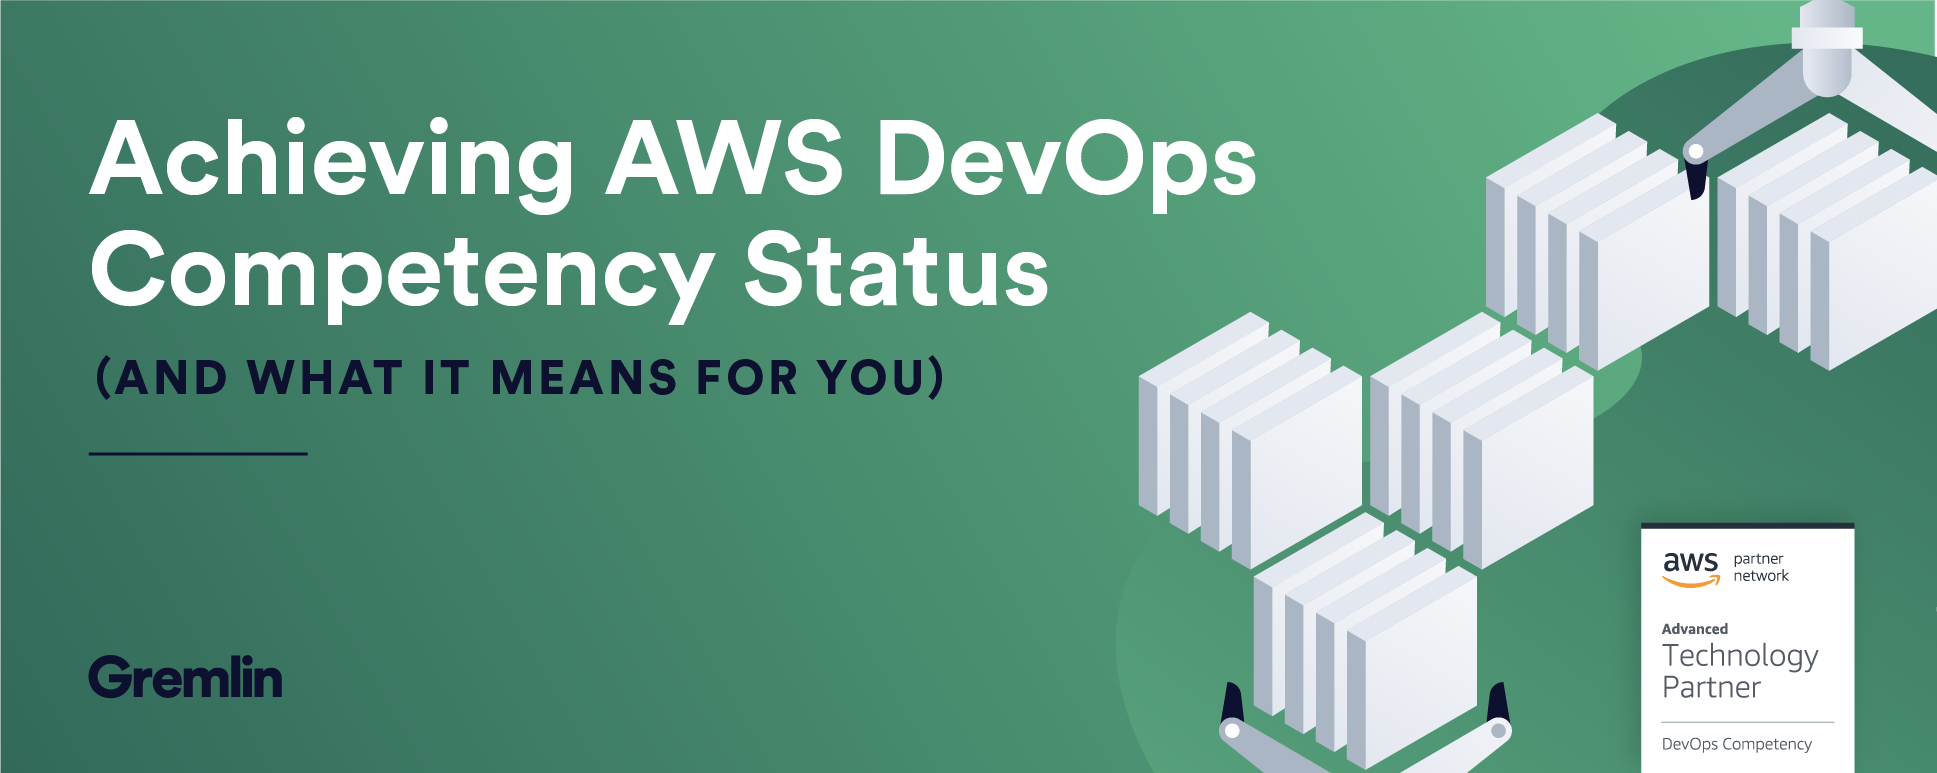 Achieving AWS DevOps Competency Status (and What it Means for You)